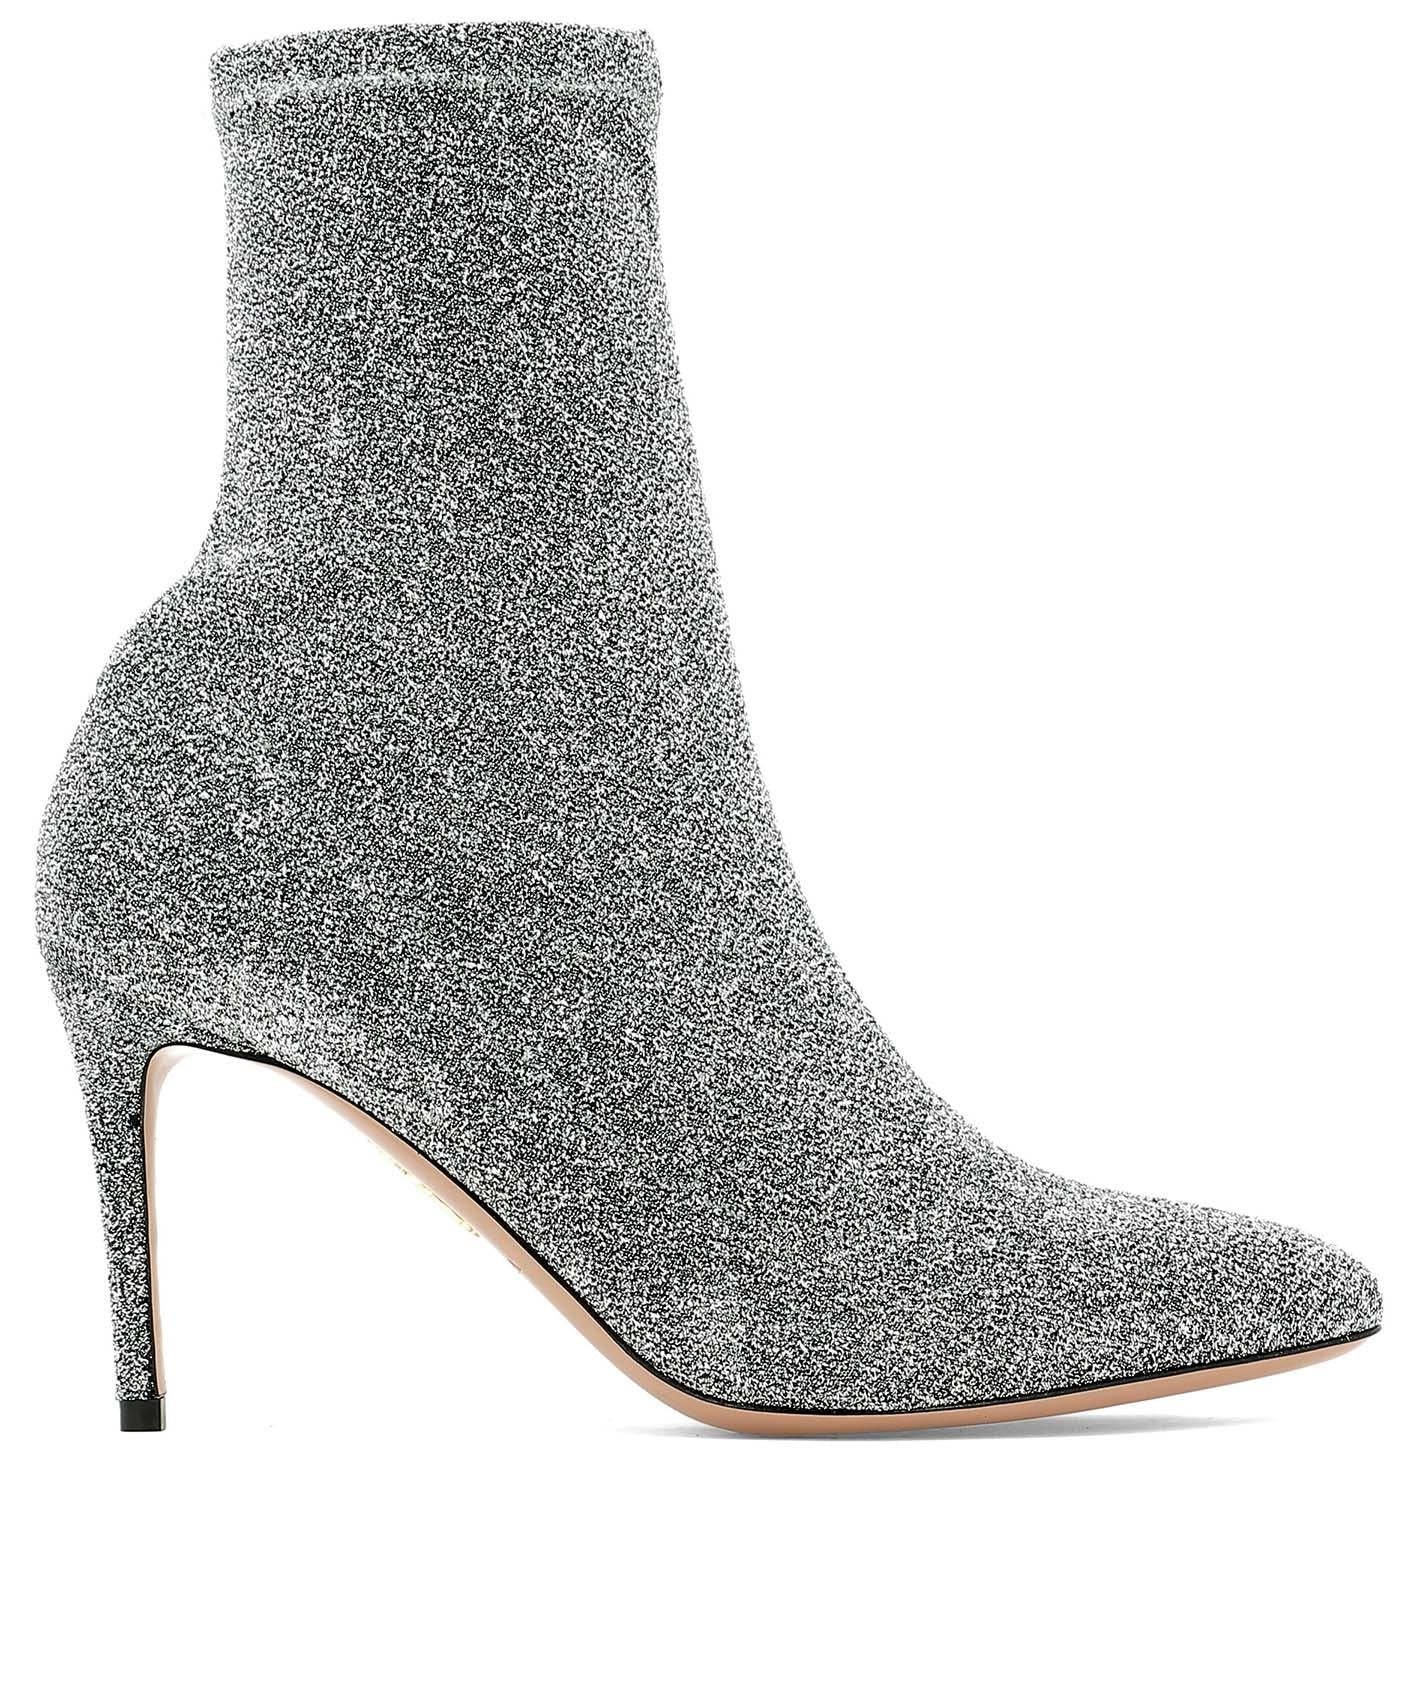 Aquazurra Eclair Glittered High Ankle Boots in Silver